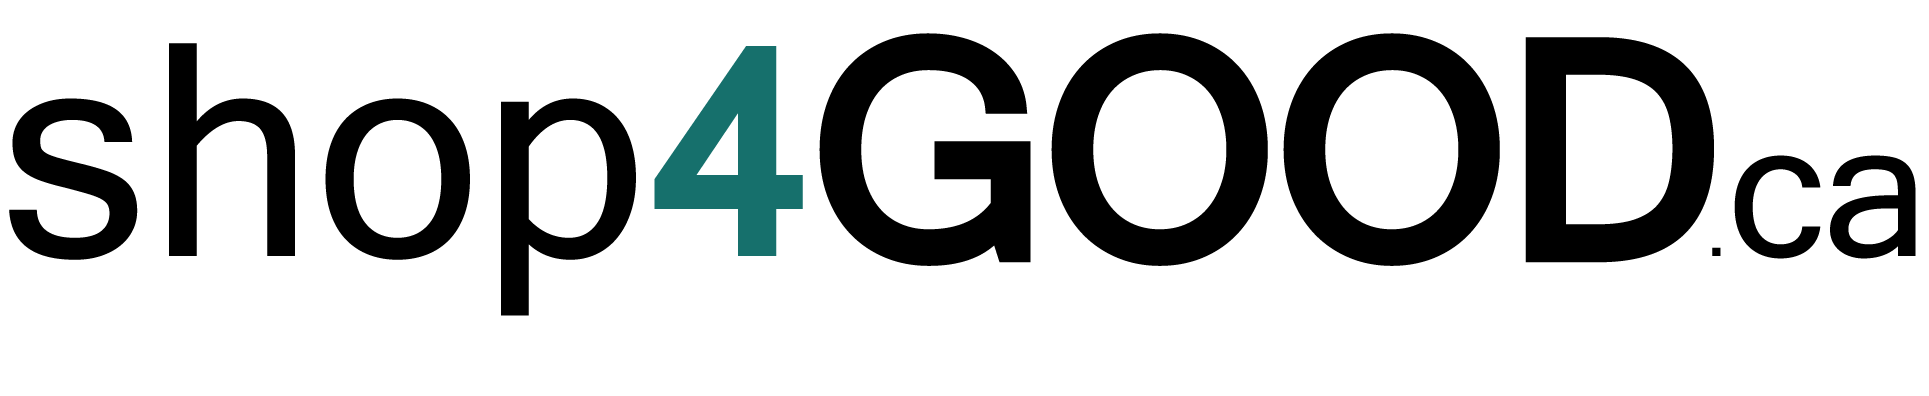 shop4GOOD-logo